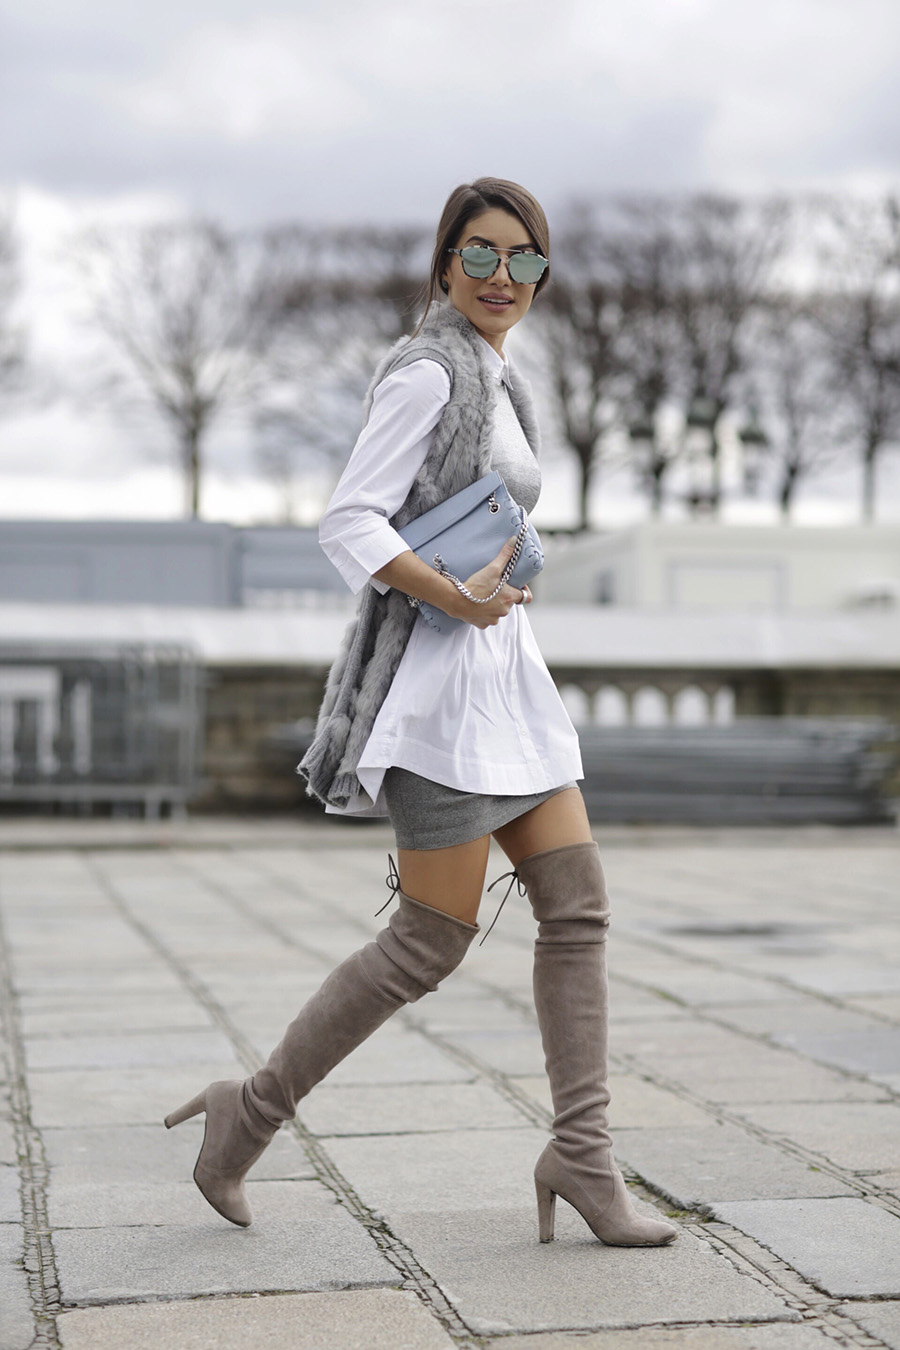 Coordinating your thigh high boots with the rest of your outfit is essential in achieving a high class, sophisticated style. Camila Coelho has got the right idea, pairing a grey vest with a matching mini skirt and boots. Shirt: Topshop, Top: Glória Coelho, Boots: Stuart Weitzman.